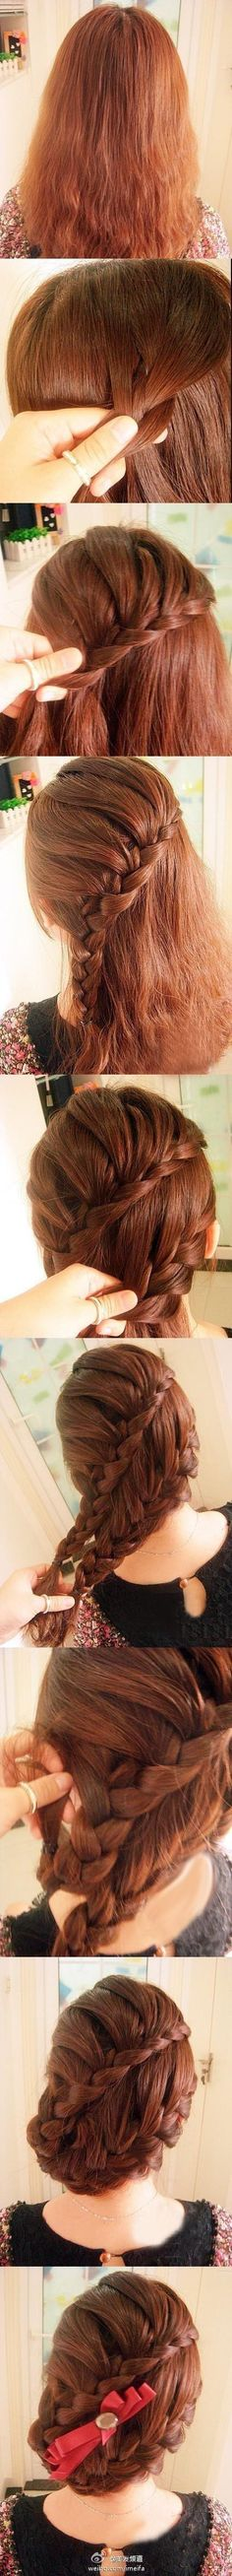 Wedding Hairstyles ~ How to: Create a plaid updo